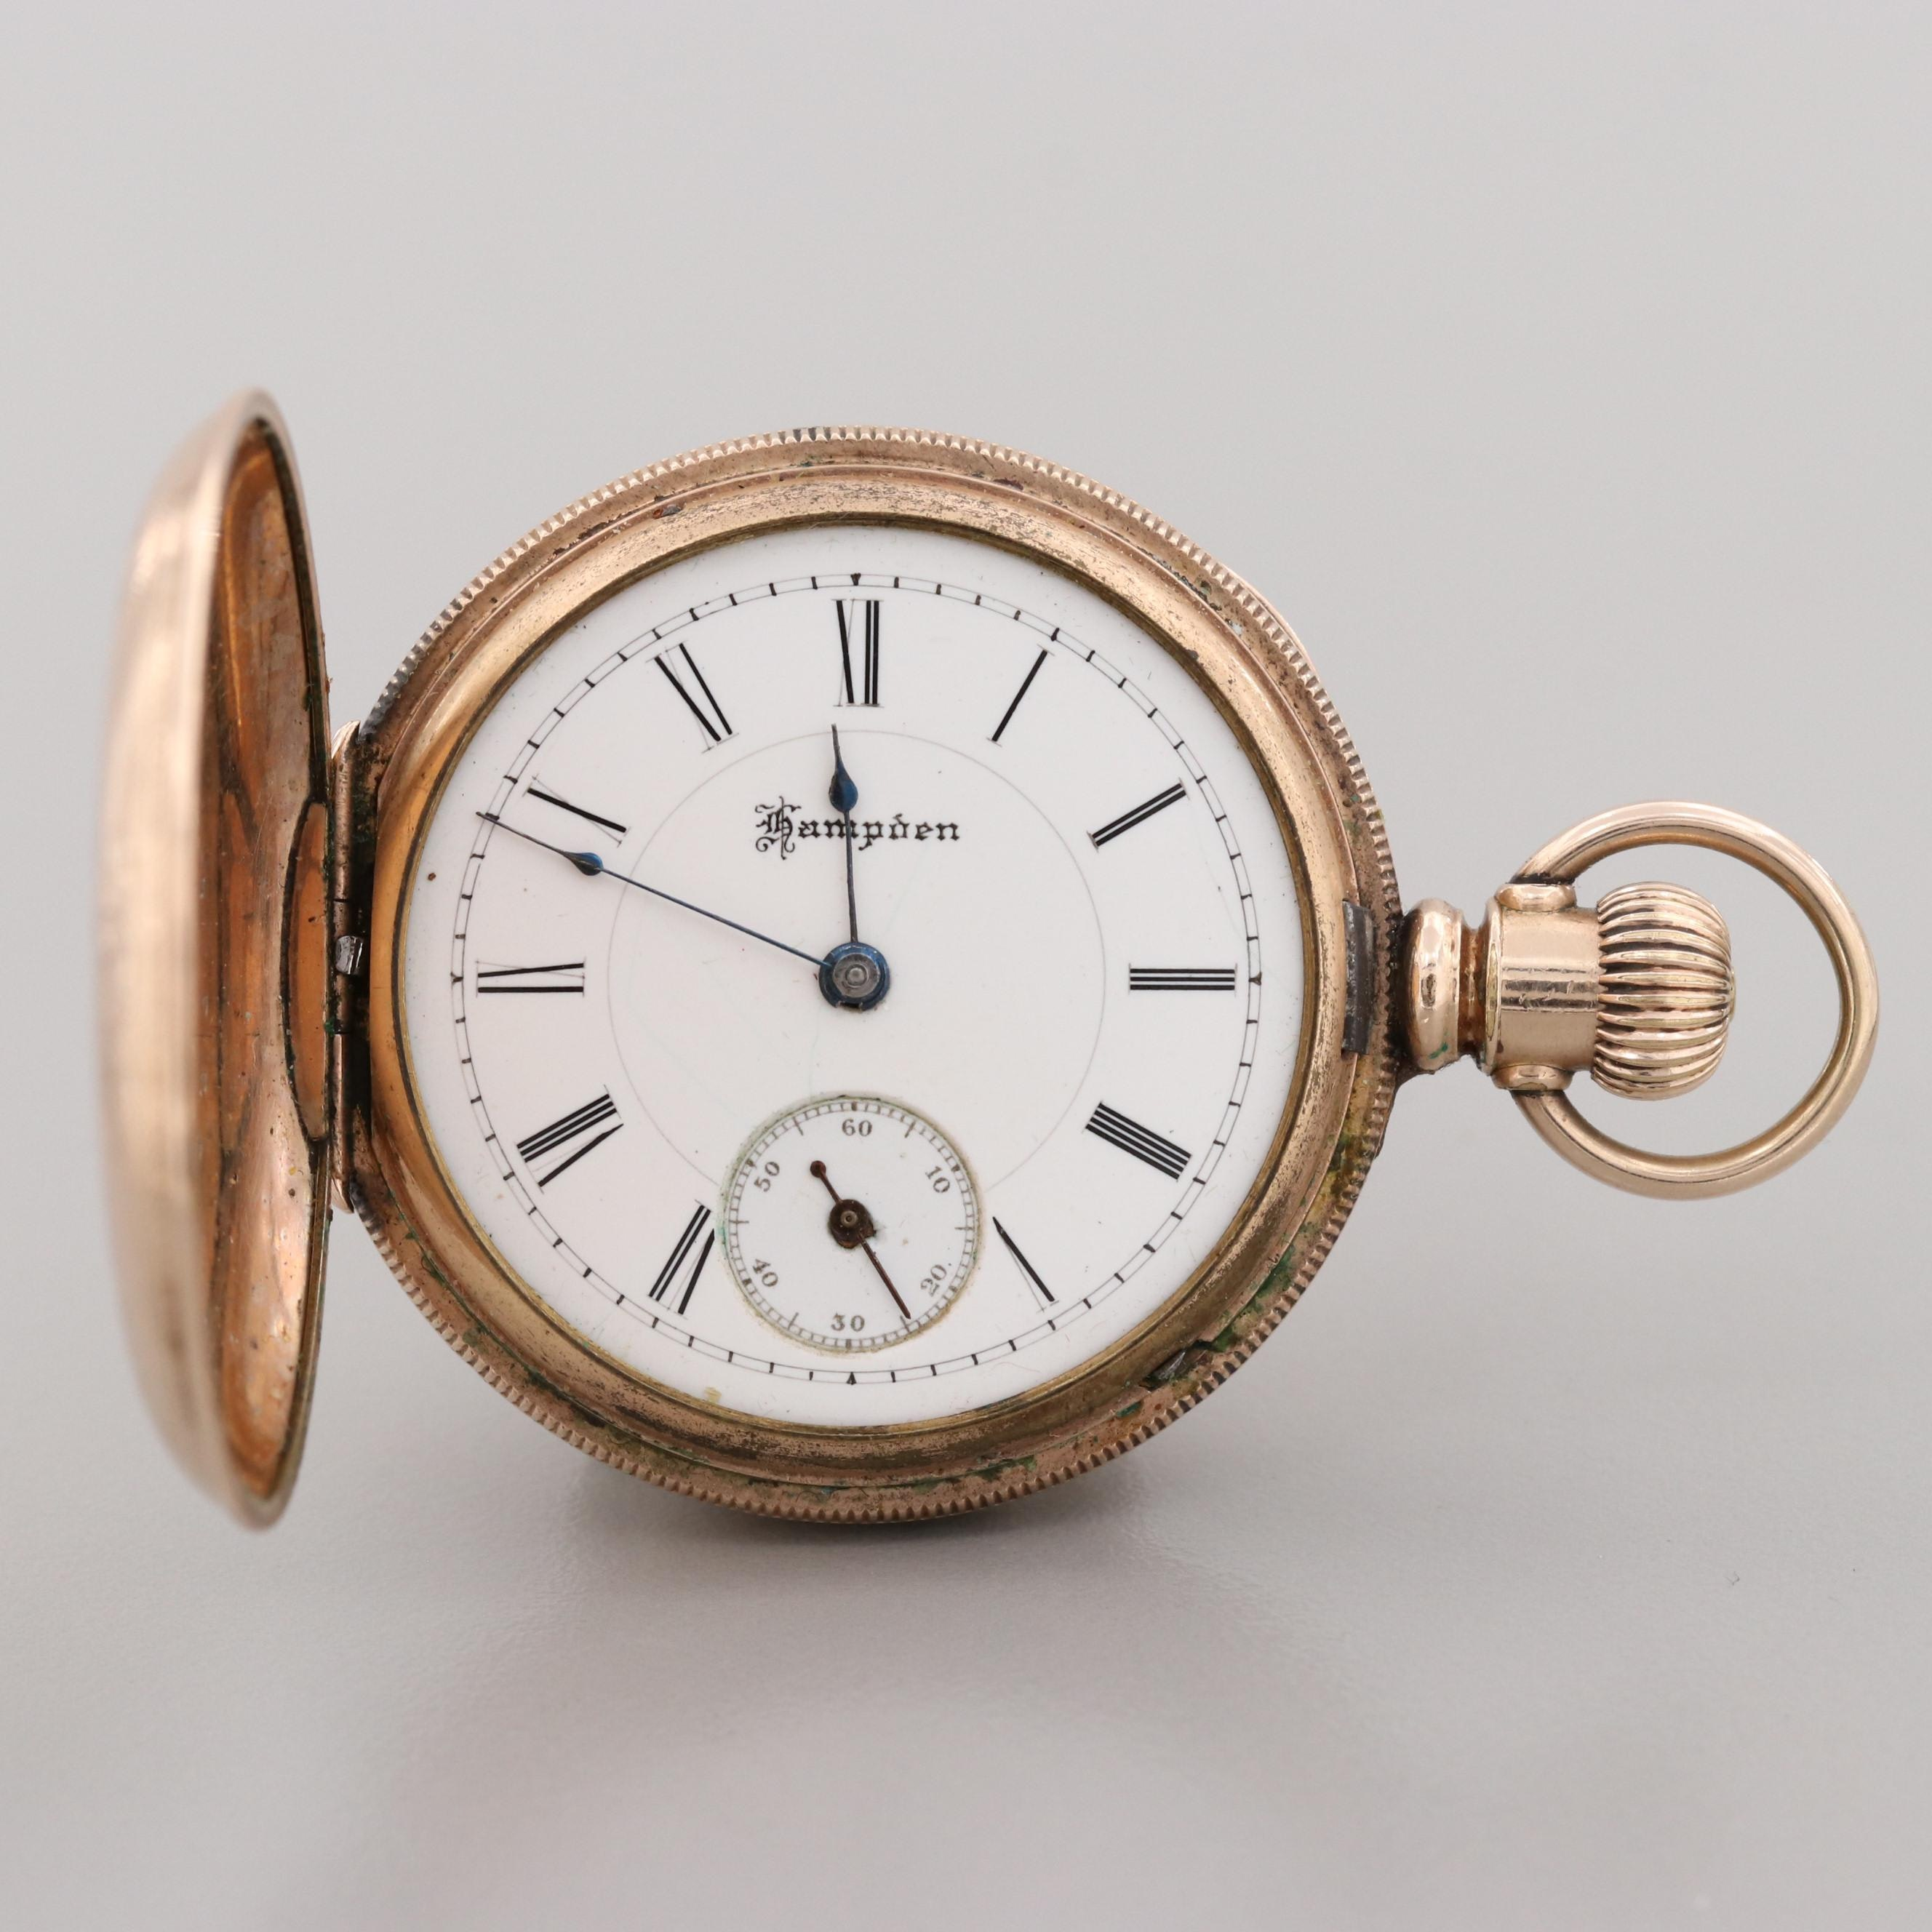 Antique Hampden Gold Filled Hunter Case Pocket Watch, 1888